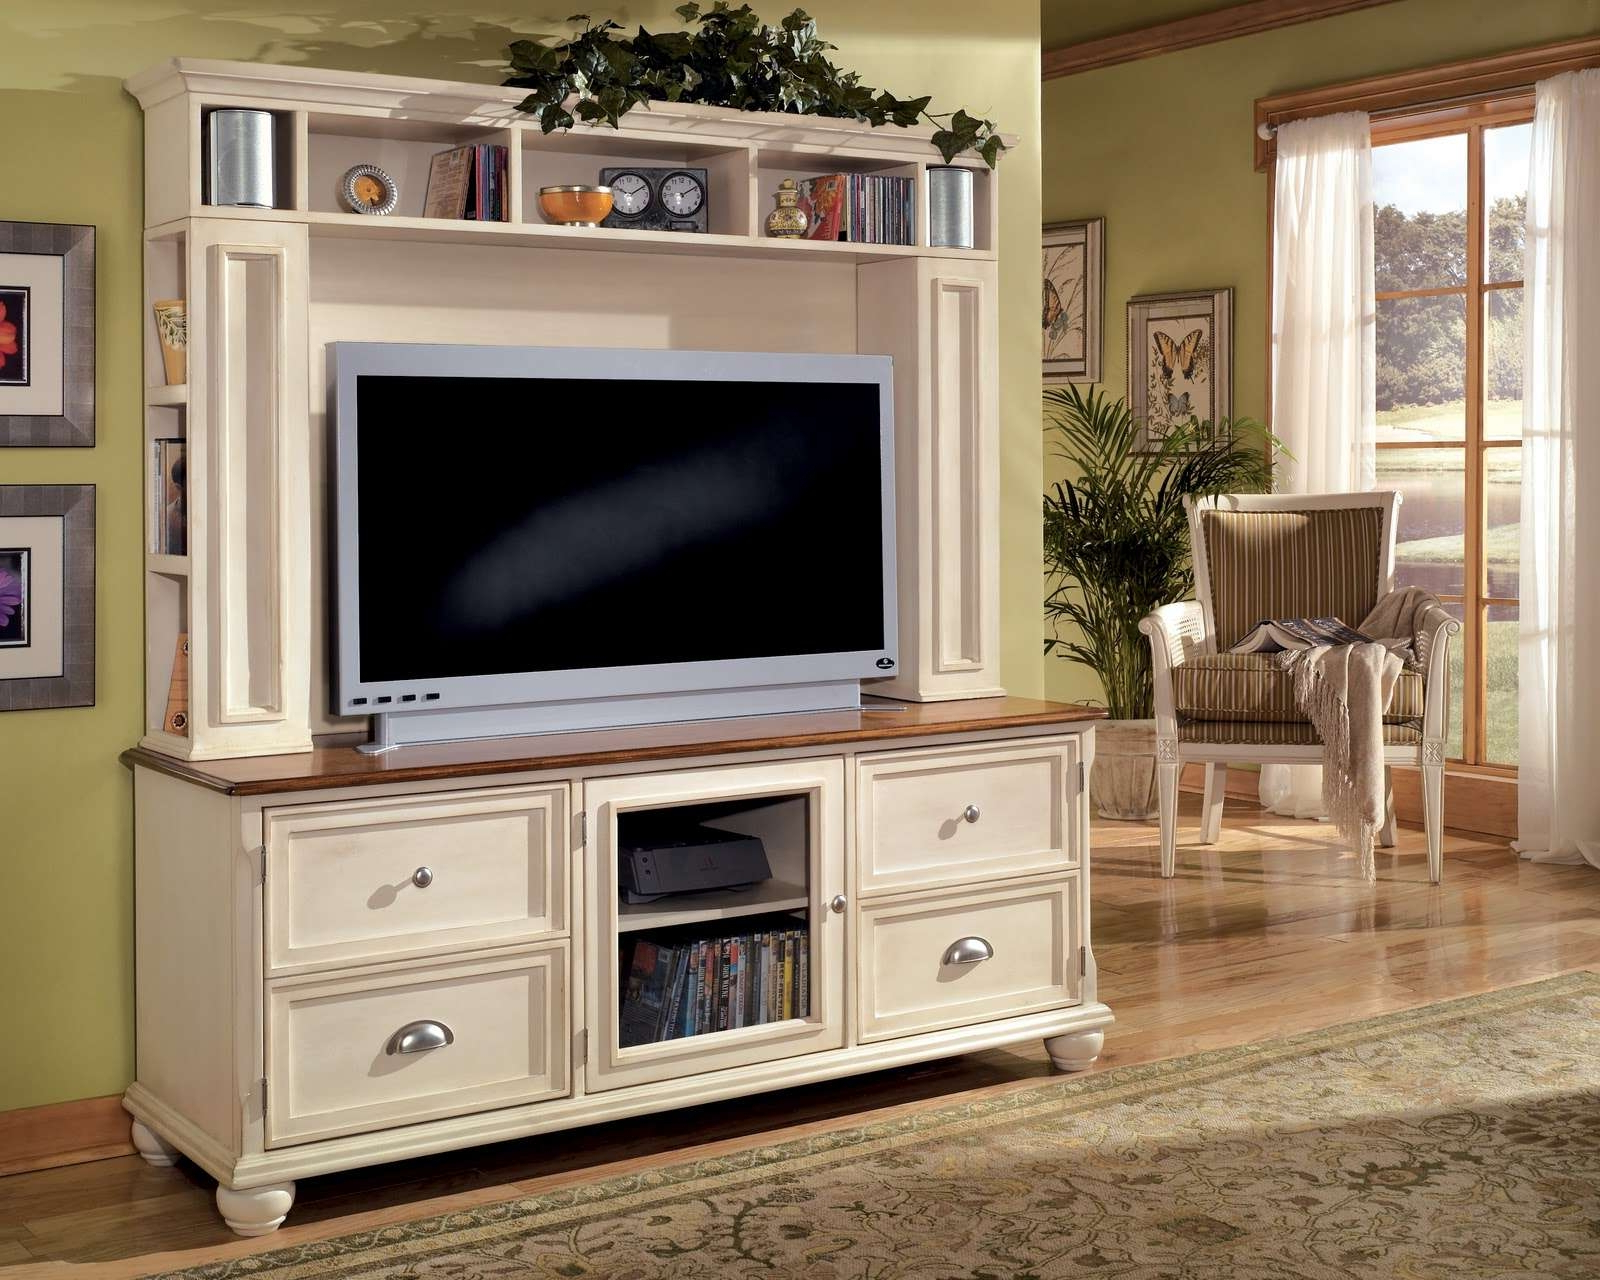 Preferred Country Style Tv Stands In Furniture (View 14 of 20)